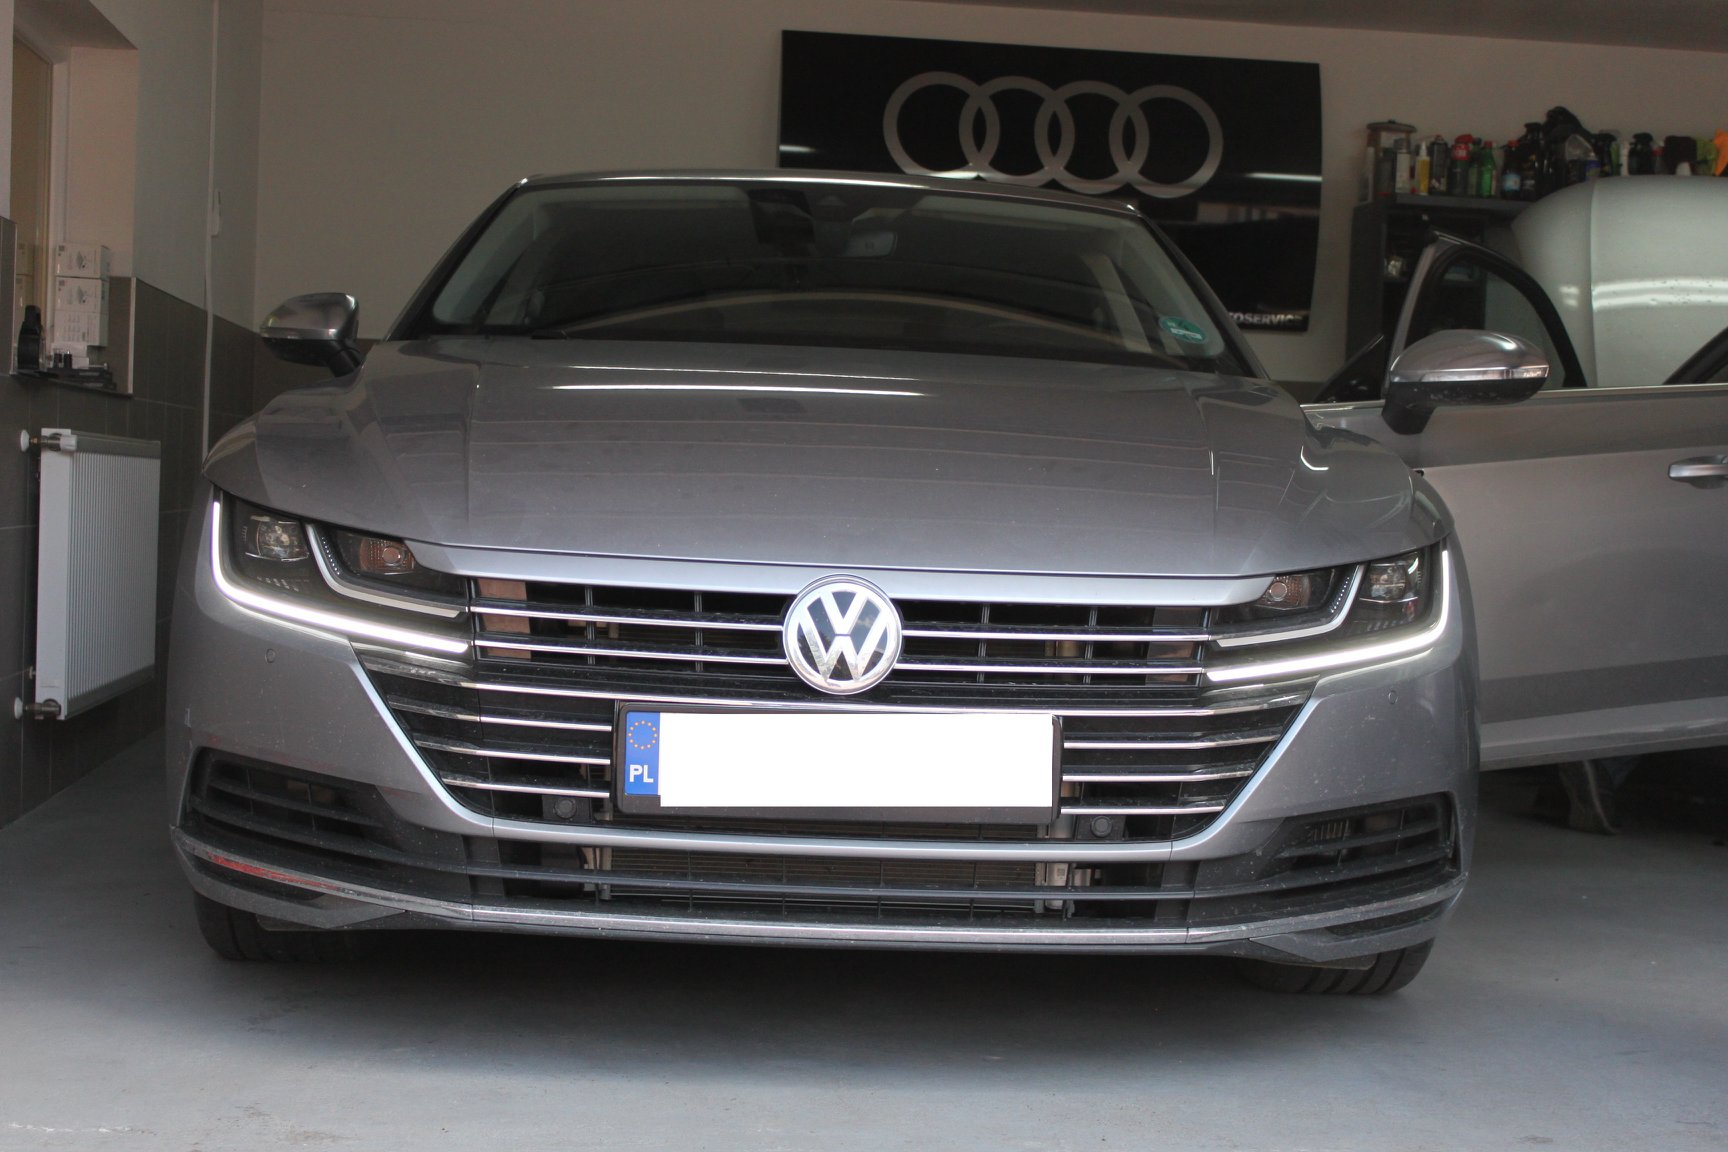 VW ARTEON 2.0 BITURBO 2018